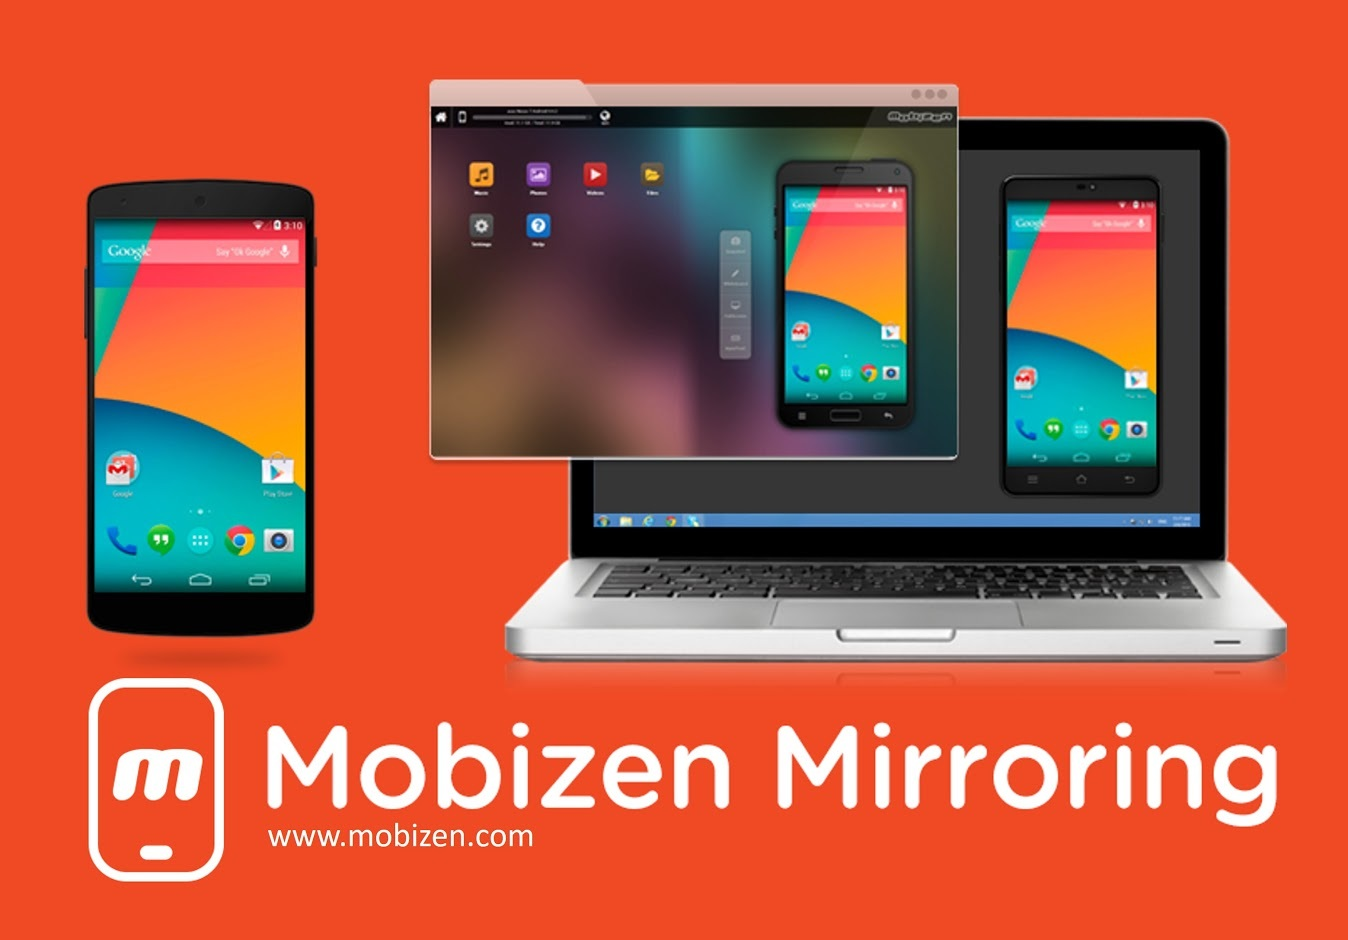 RSUPPORT launched paid service of advanced smartphone screen sharing and remote control App 'Mobizen Mirroring' globally. RSUPPORT(KOSDAQ:131370) is the remote support and control solution provider for global cloud service. Its paid service, 'Mobizen Mirroring Professional' provides connecting using relay servers between PCs and mobile devices enabling 3G, LTE and WiFi; support of iOS mirroring; recording mirrored screen and connection with USB between PCs and mobile devices or P2P in local networks; remote control of mobile screens using web browser; and file transfer between PCs and mobile devices. (Graphic: Business Wire)